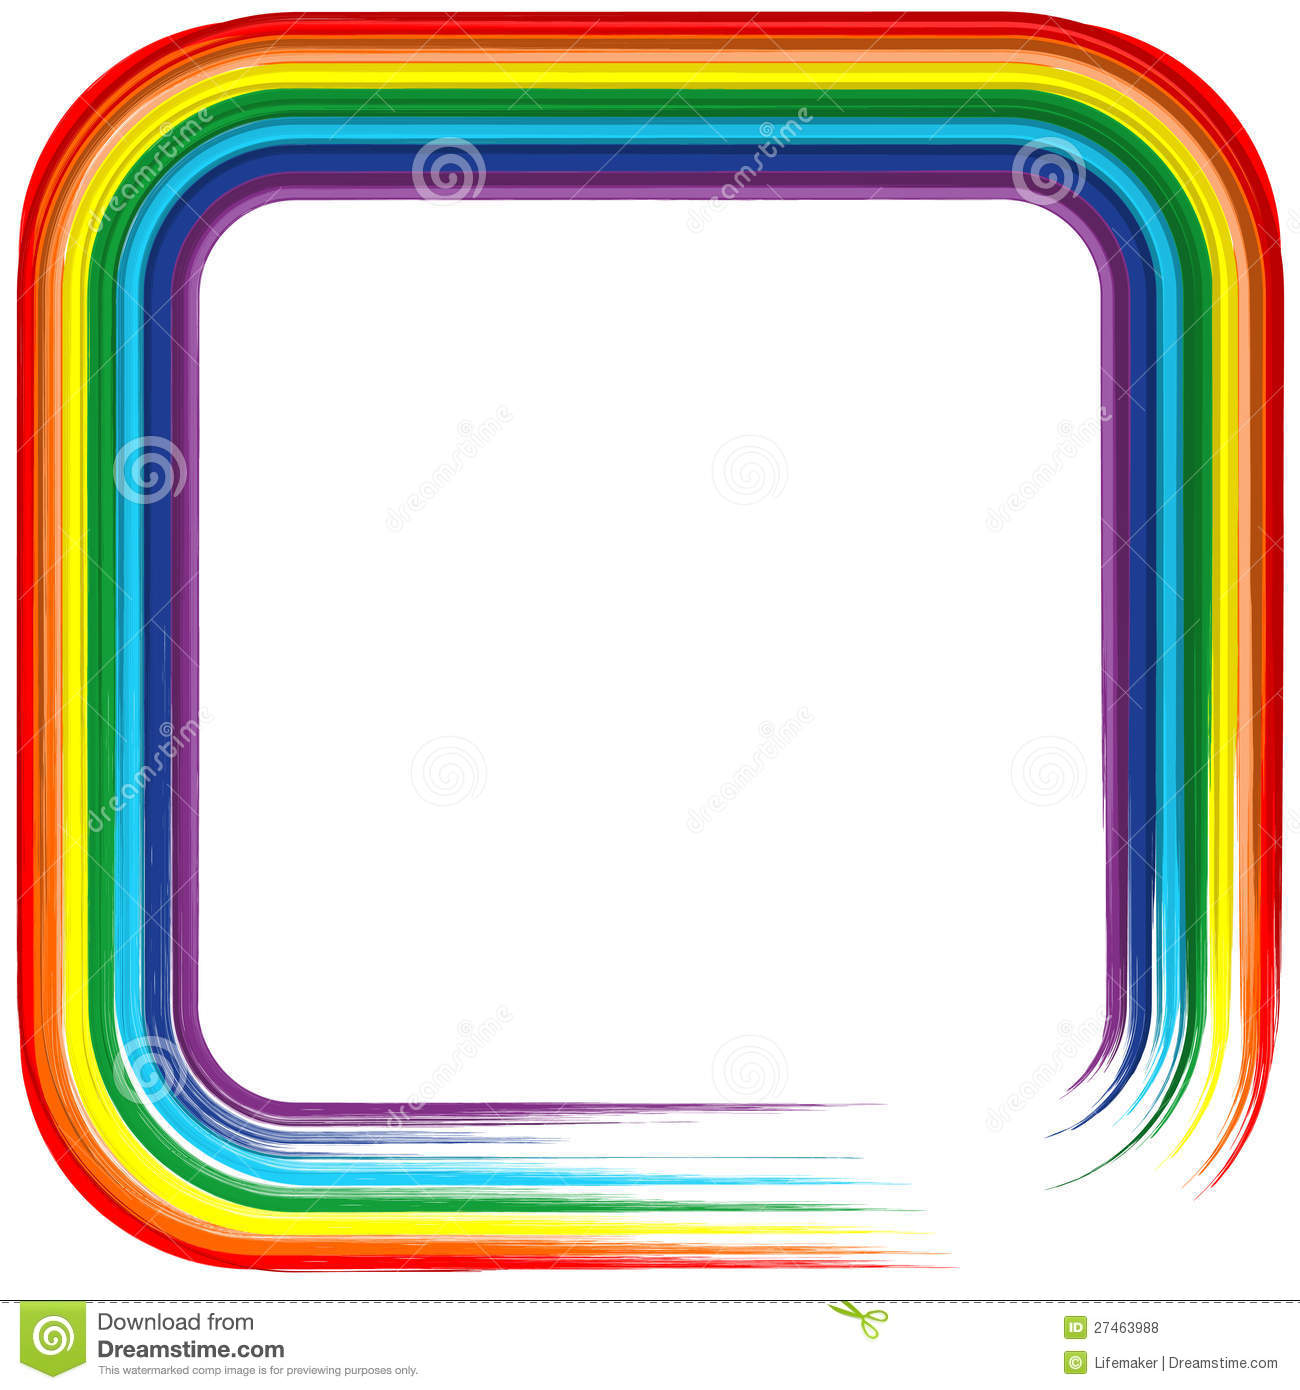 rainbow rectangle clipart www imgkid com the image kid rectangular prism clip art black and white rectangular prism clipart black and white